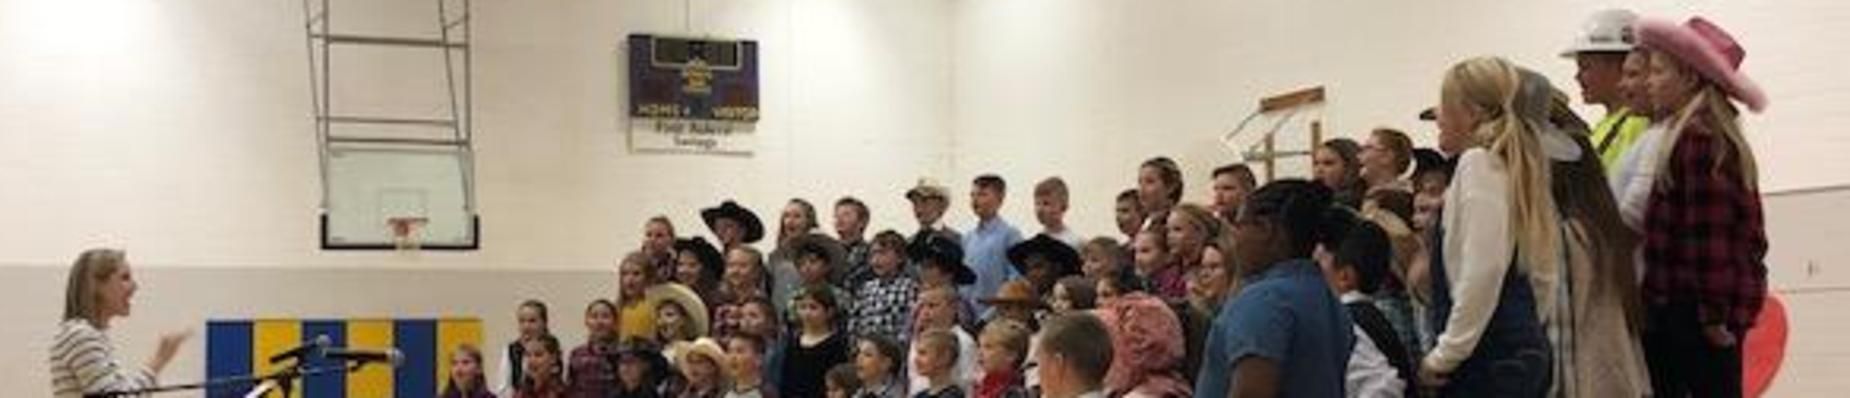 All 4th grade students standing on risers looking at music teacher, singing